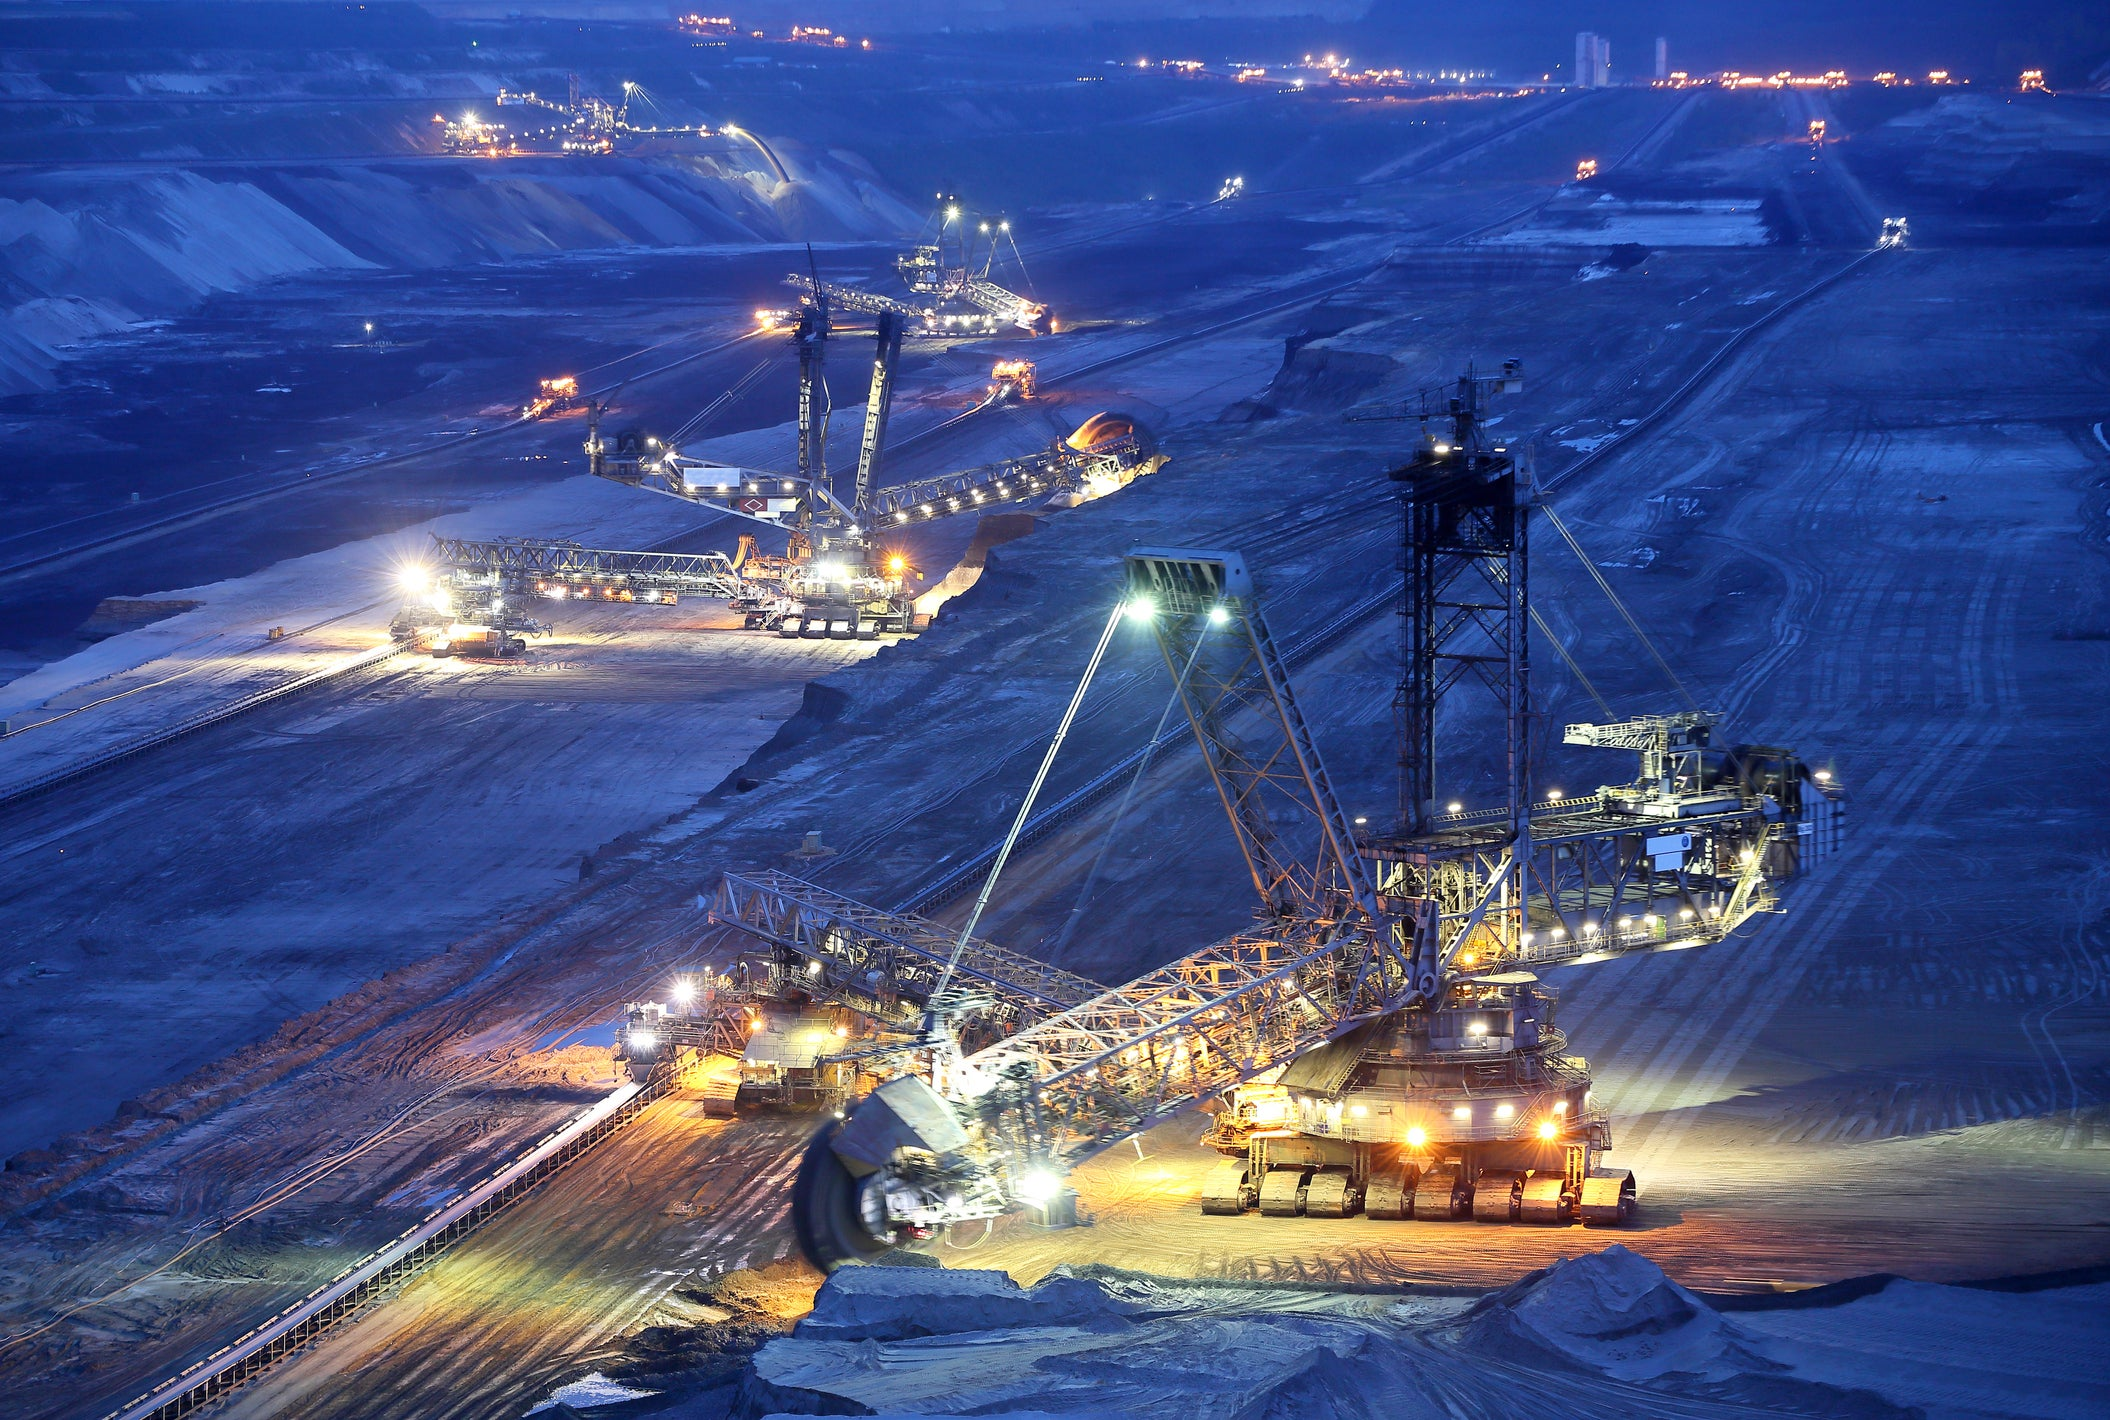 A mining site at night.